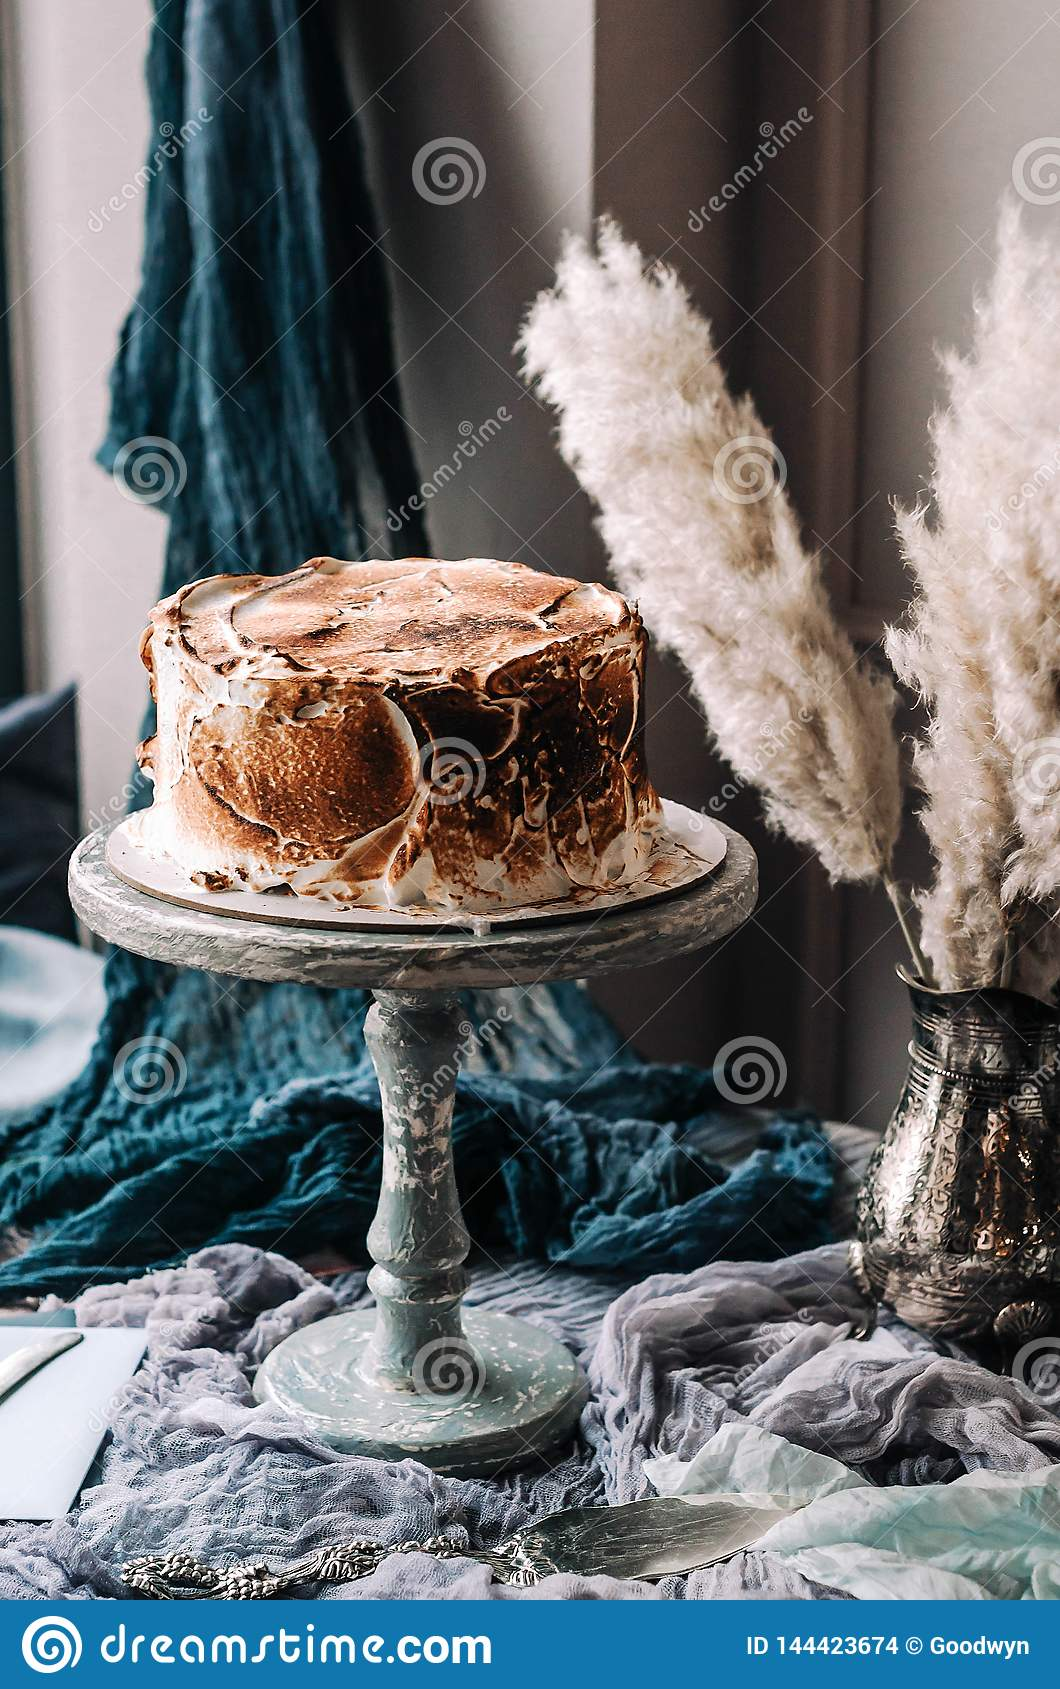 Cream cake on a wooden vintage stand.